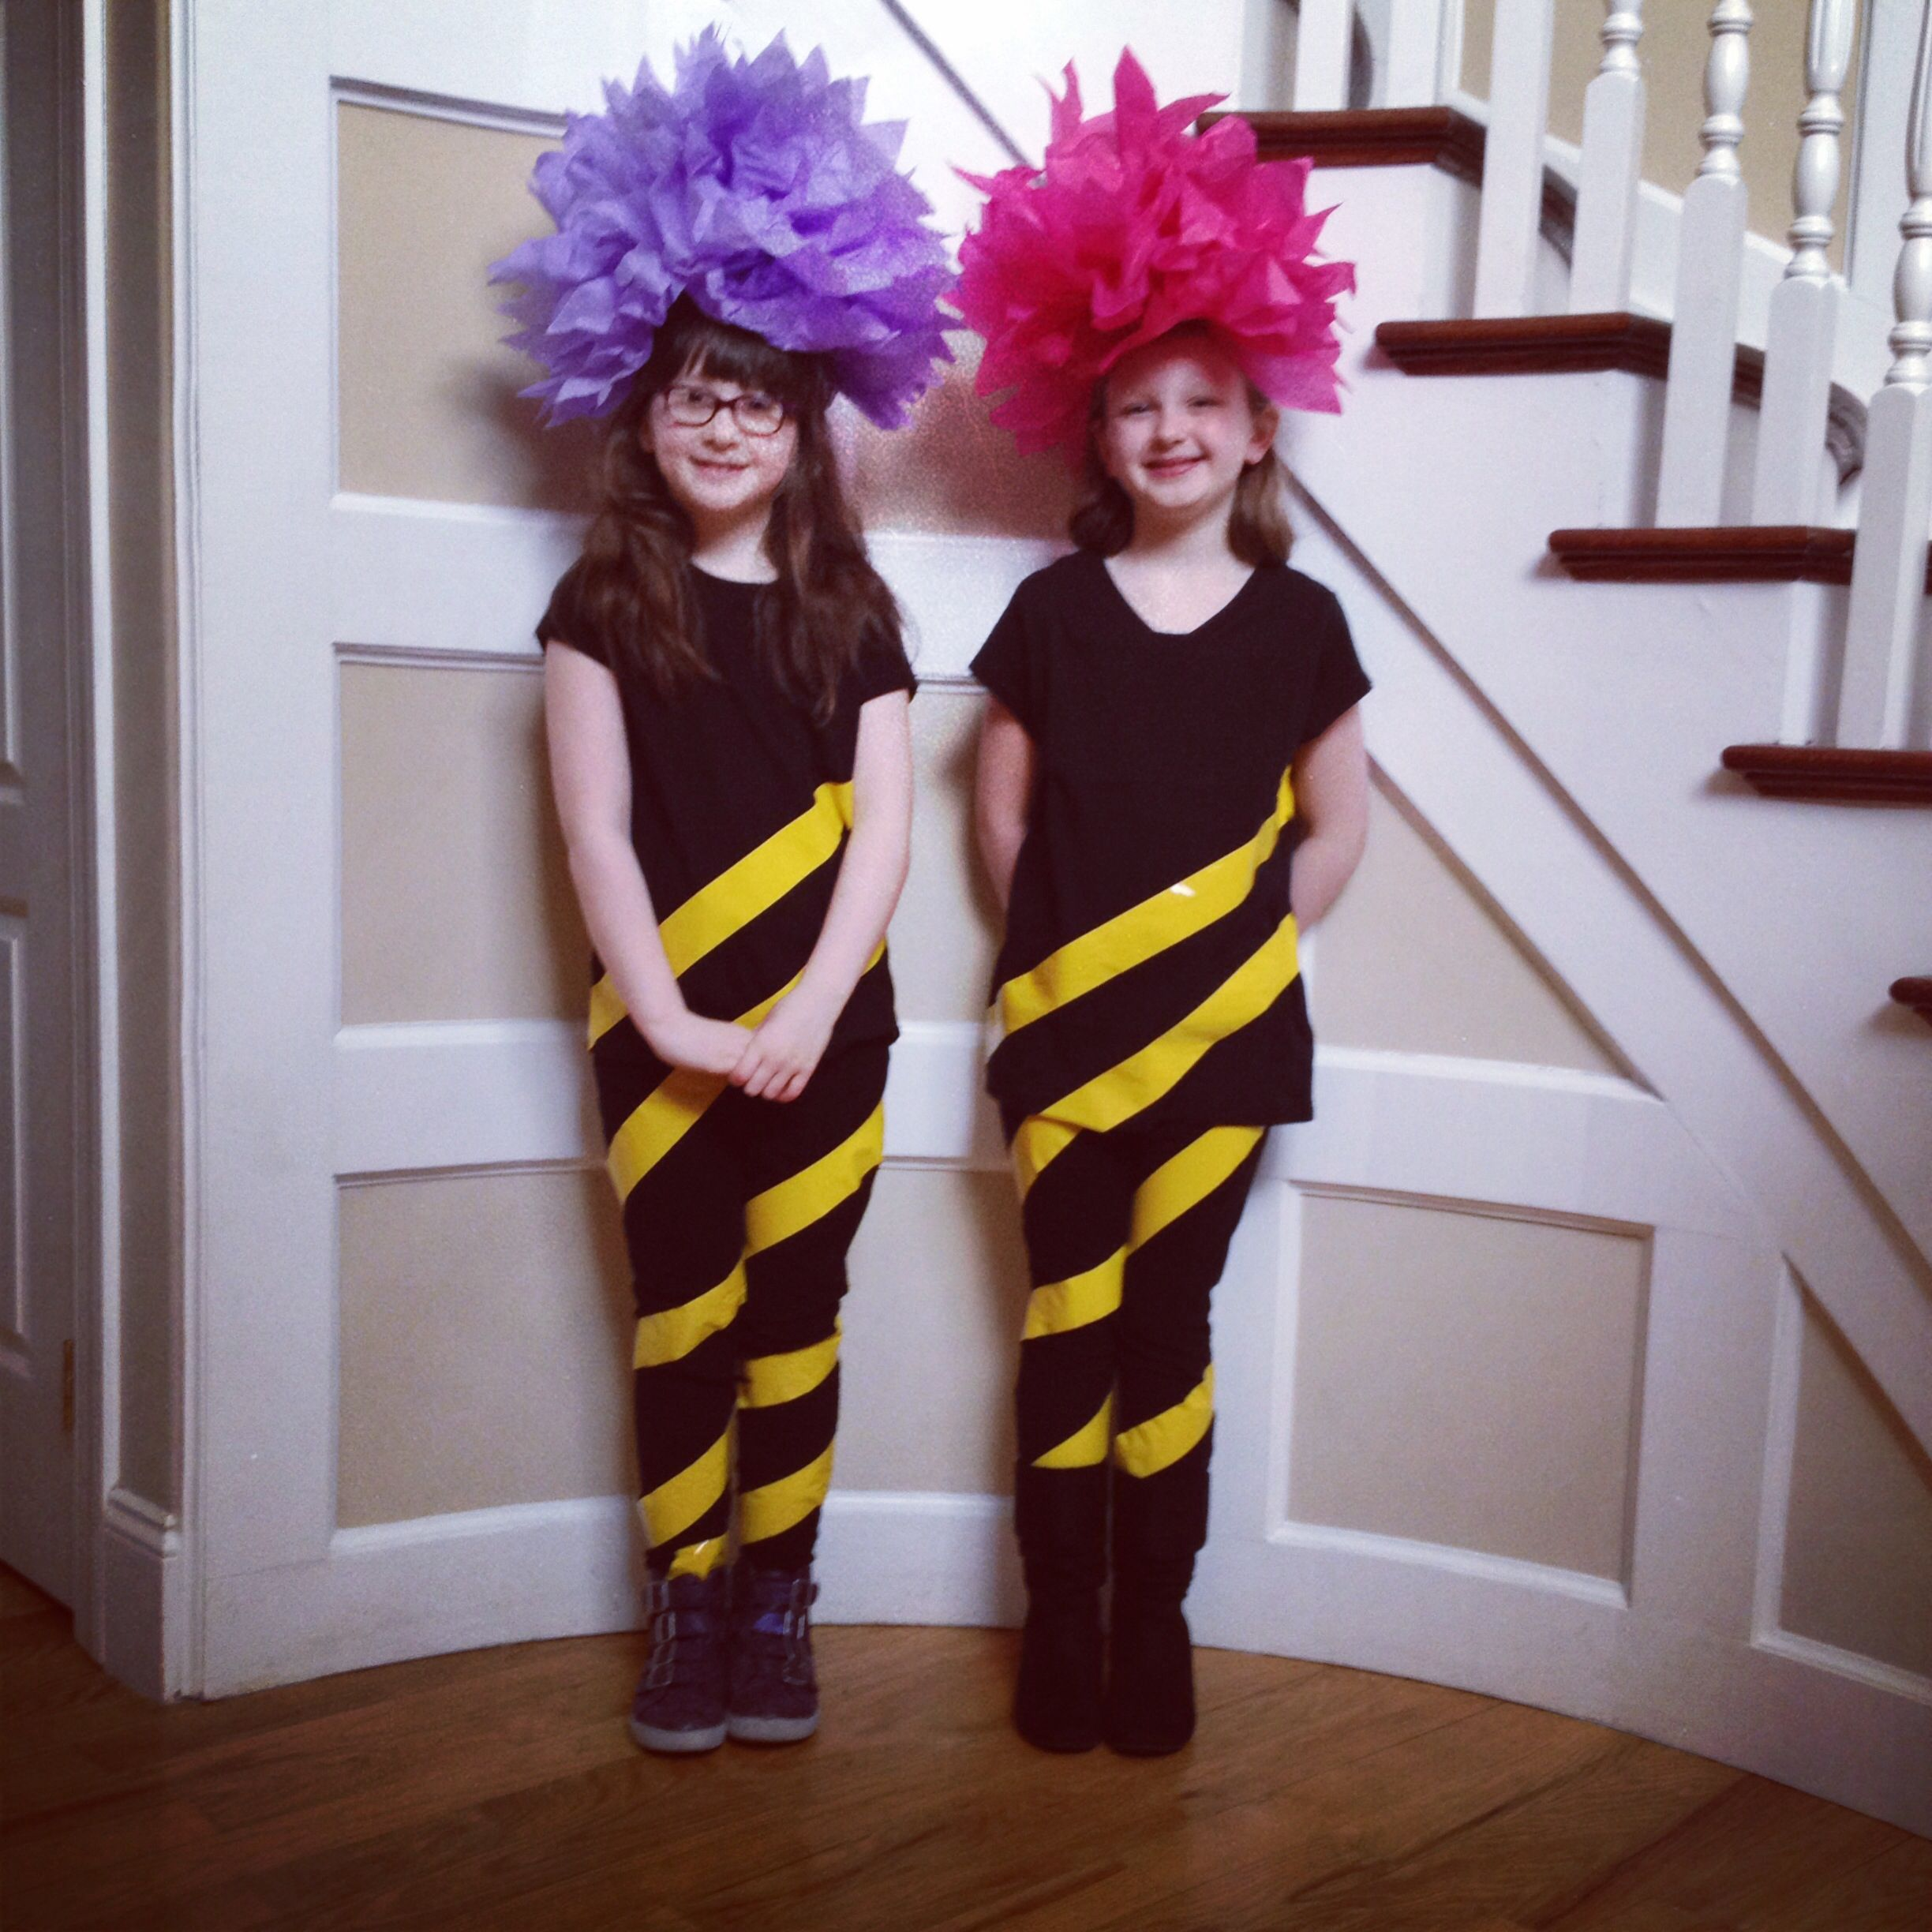 Truffula tree costumes dr seuss projectsschool stuff truffula tree costumes dr seuss solutioingenieria Choice Image